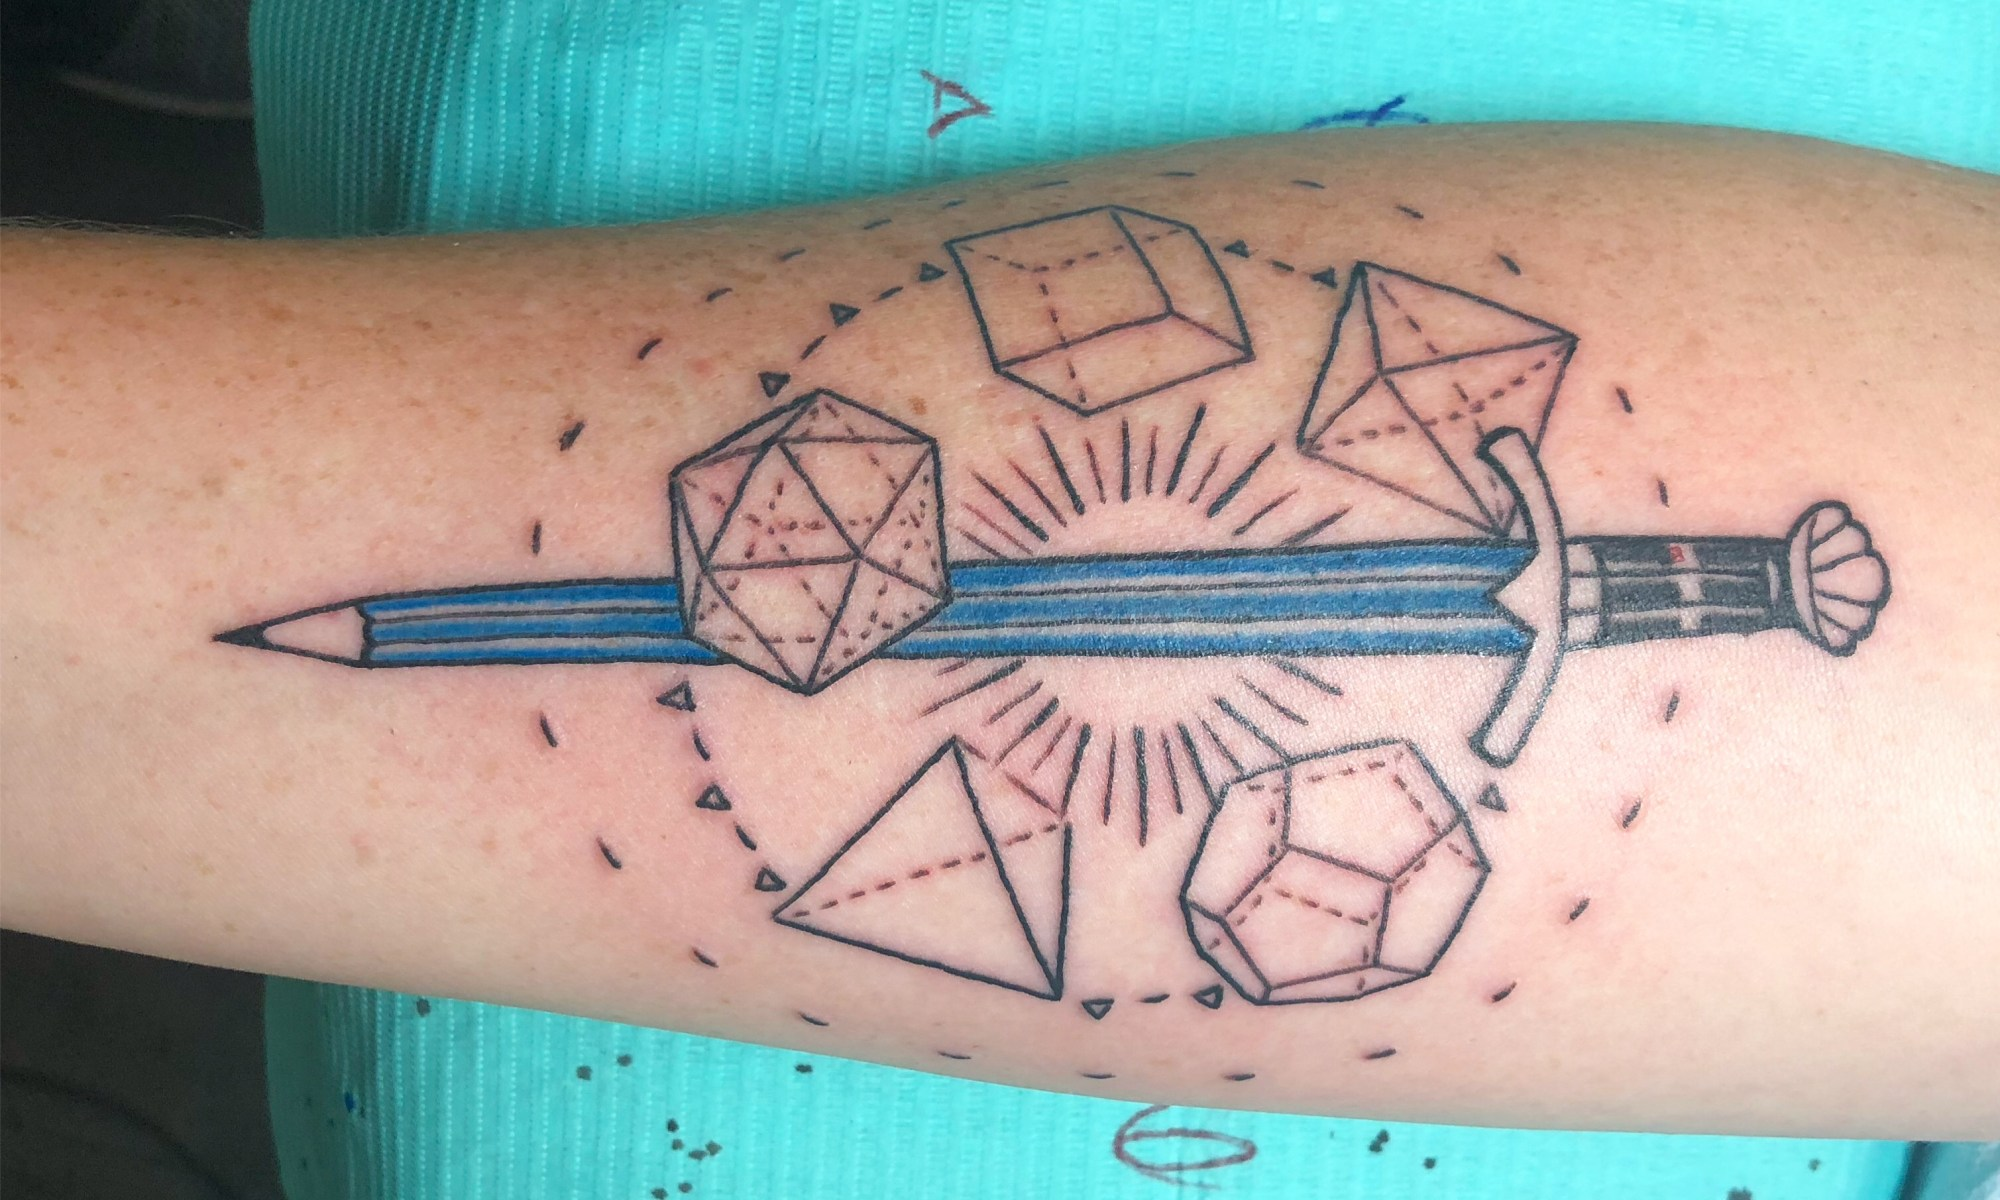 Tattoo of a sword-pencil surrounded by the platonic solids